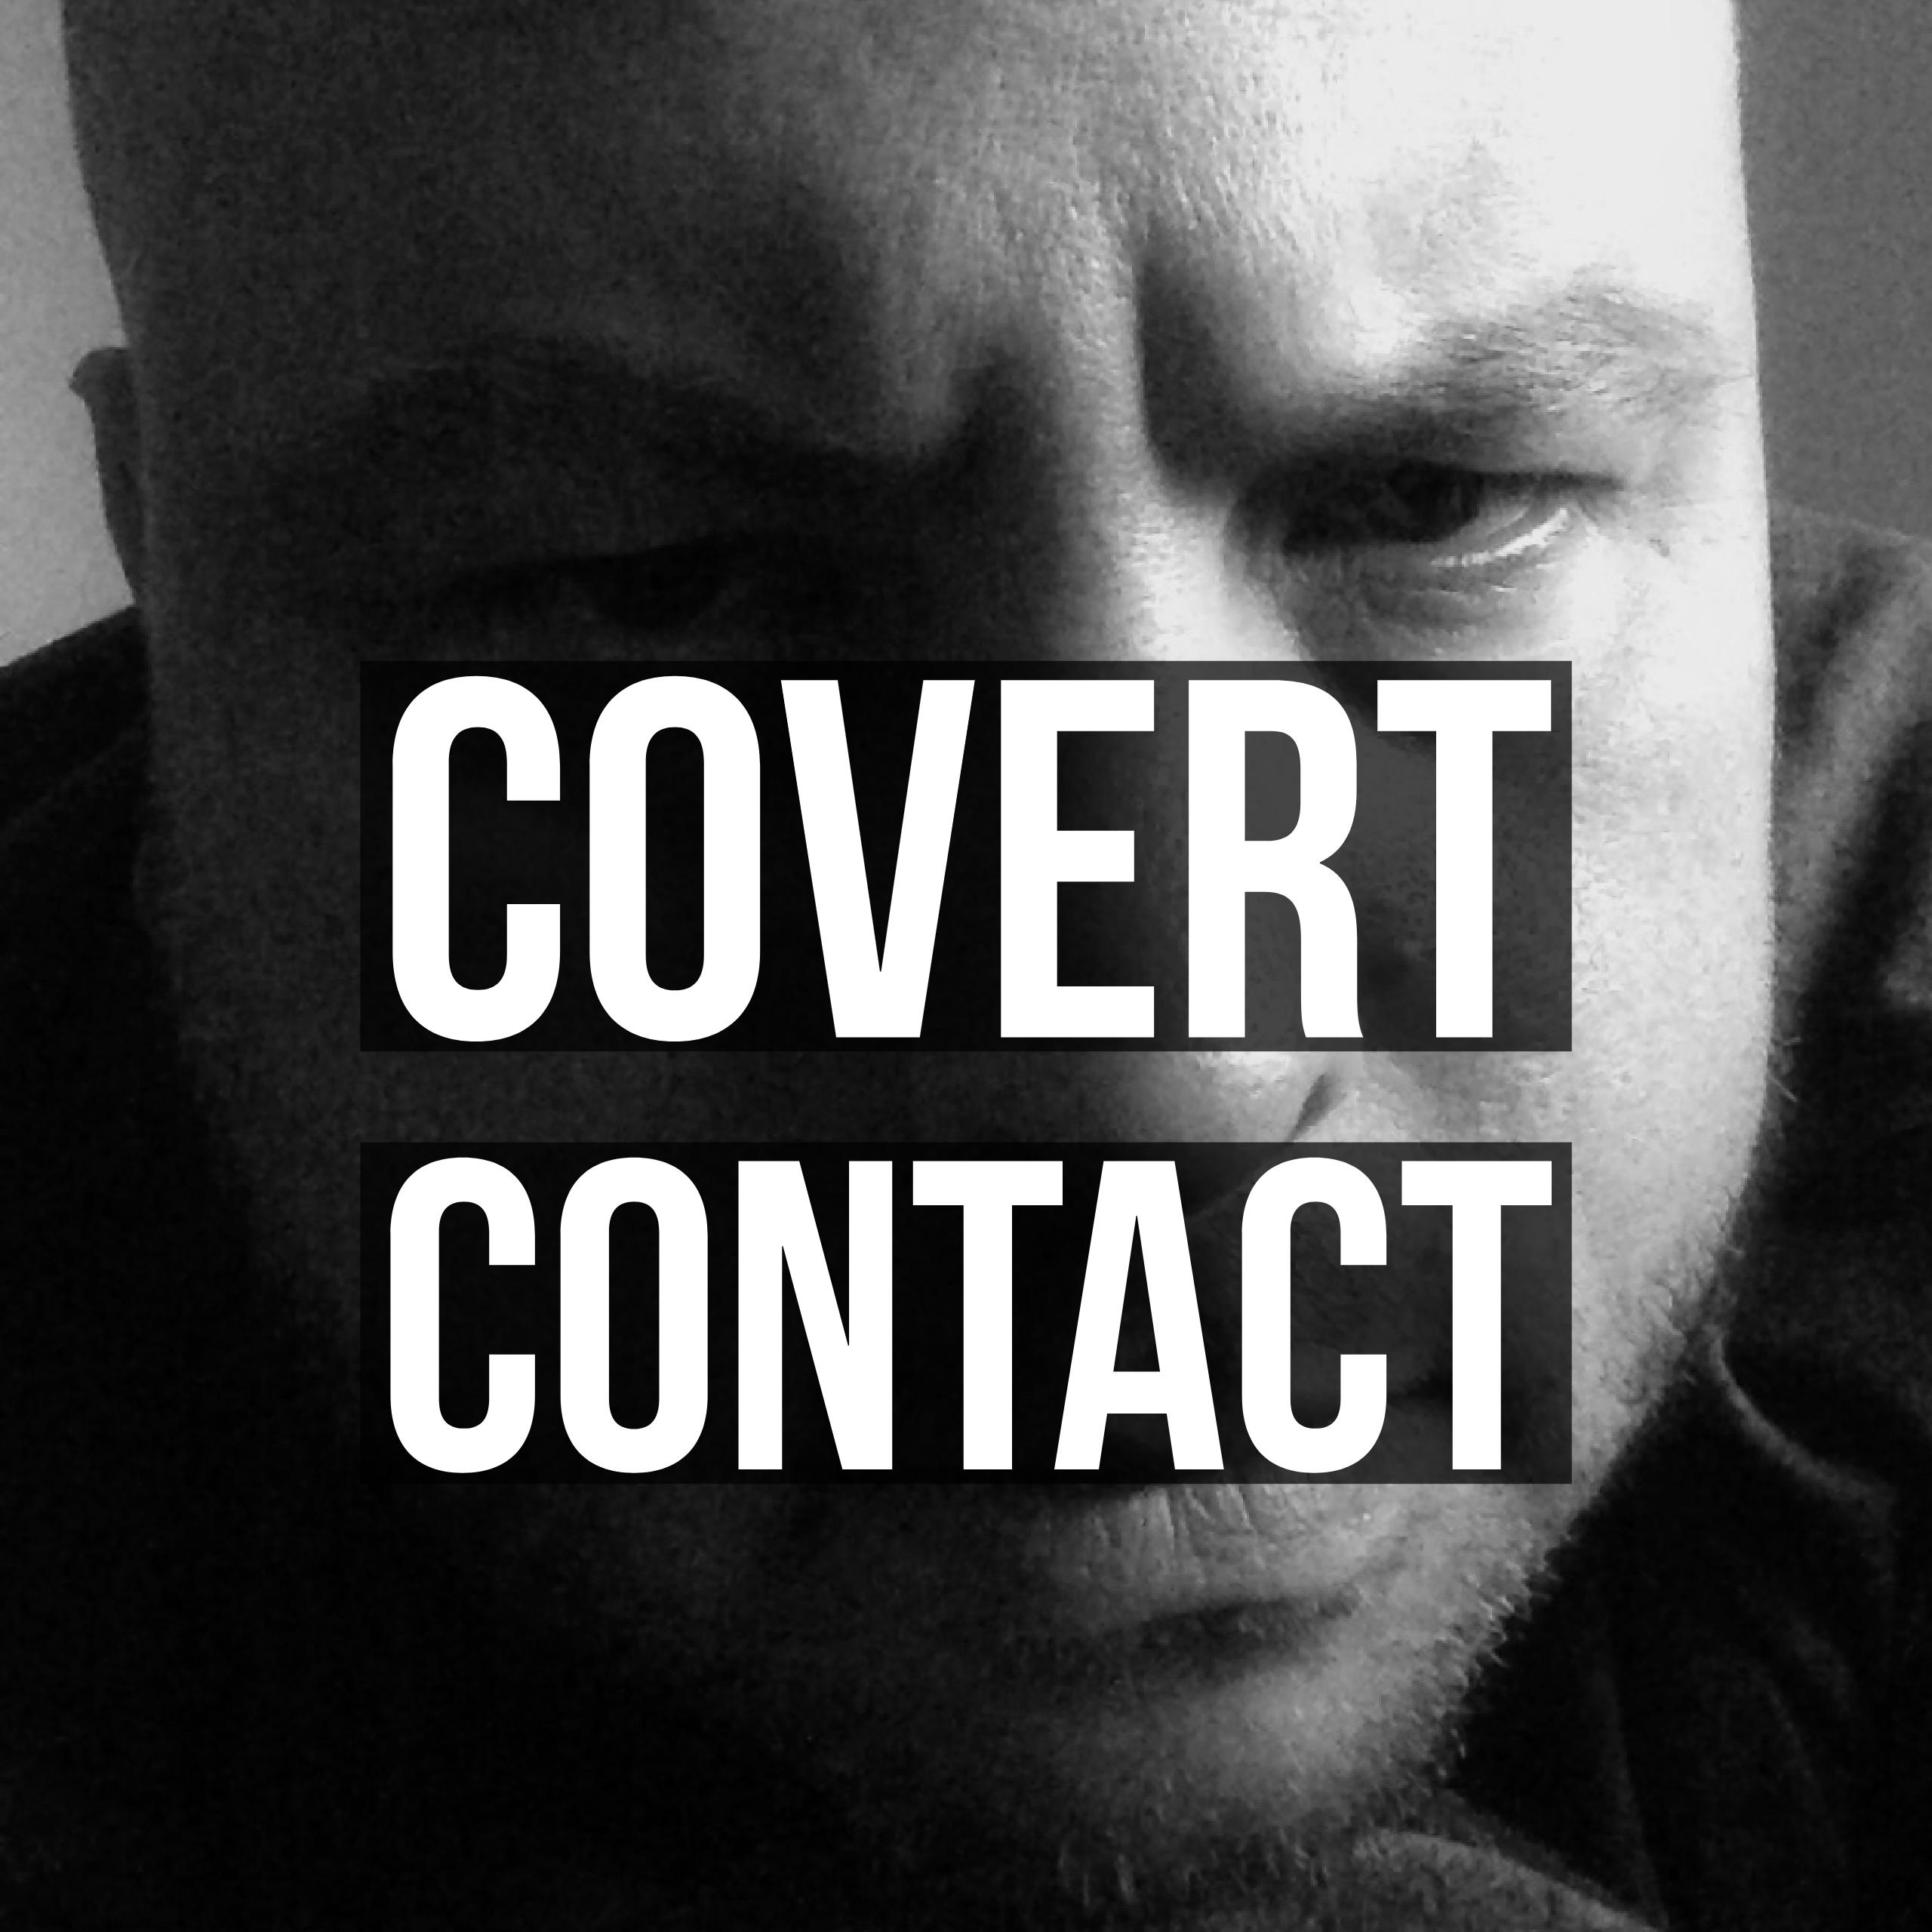 Covert Contact logo